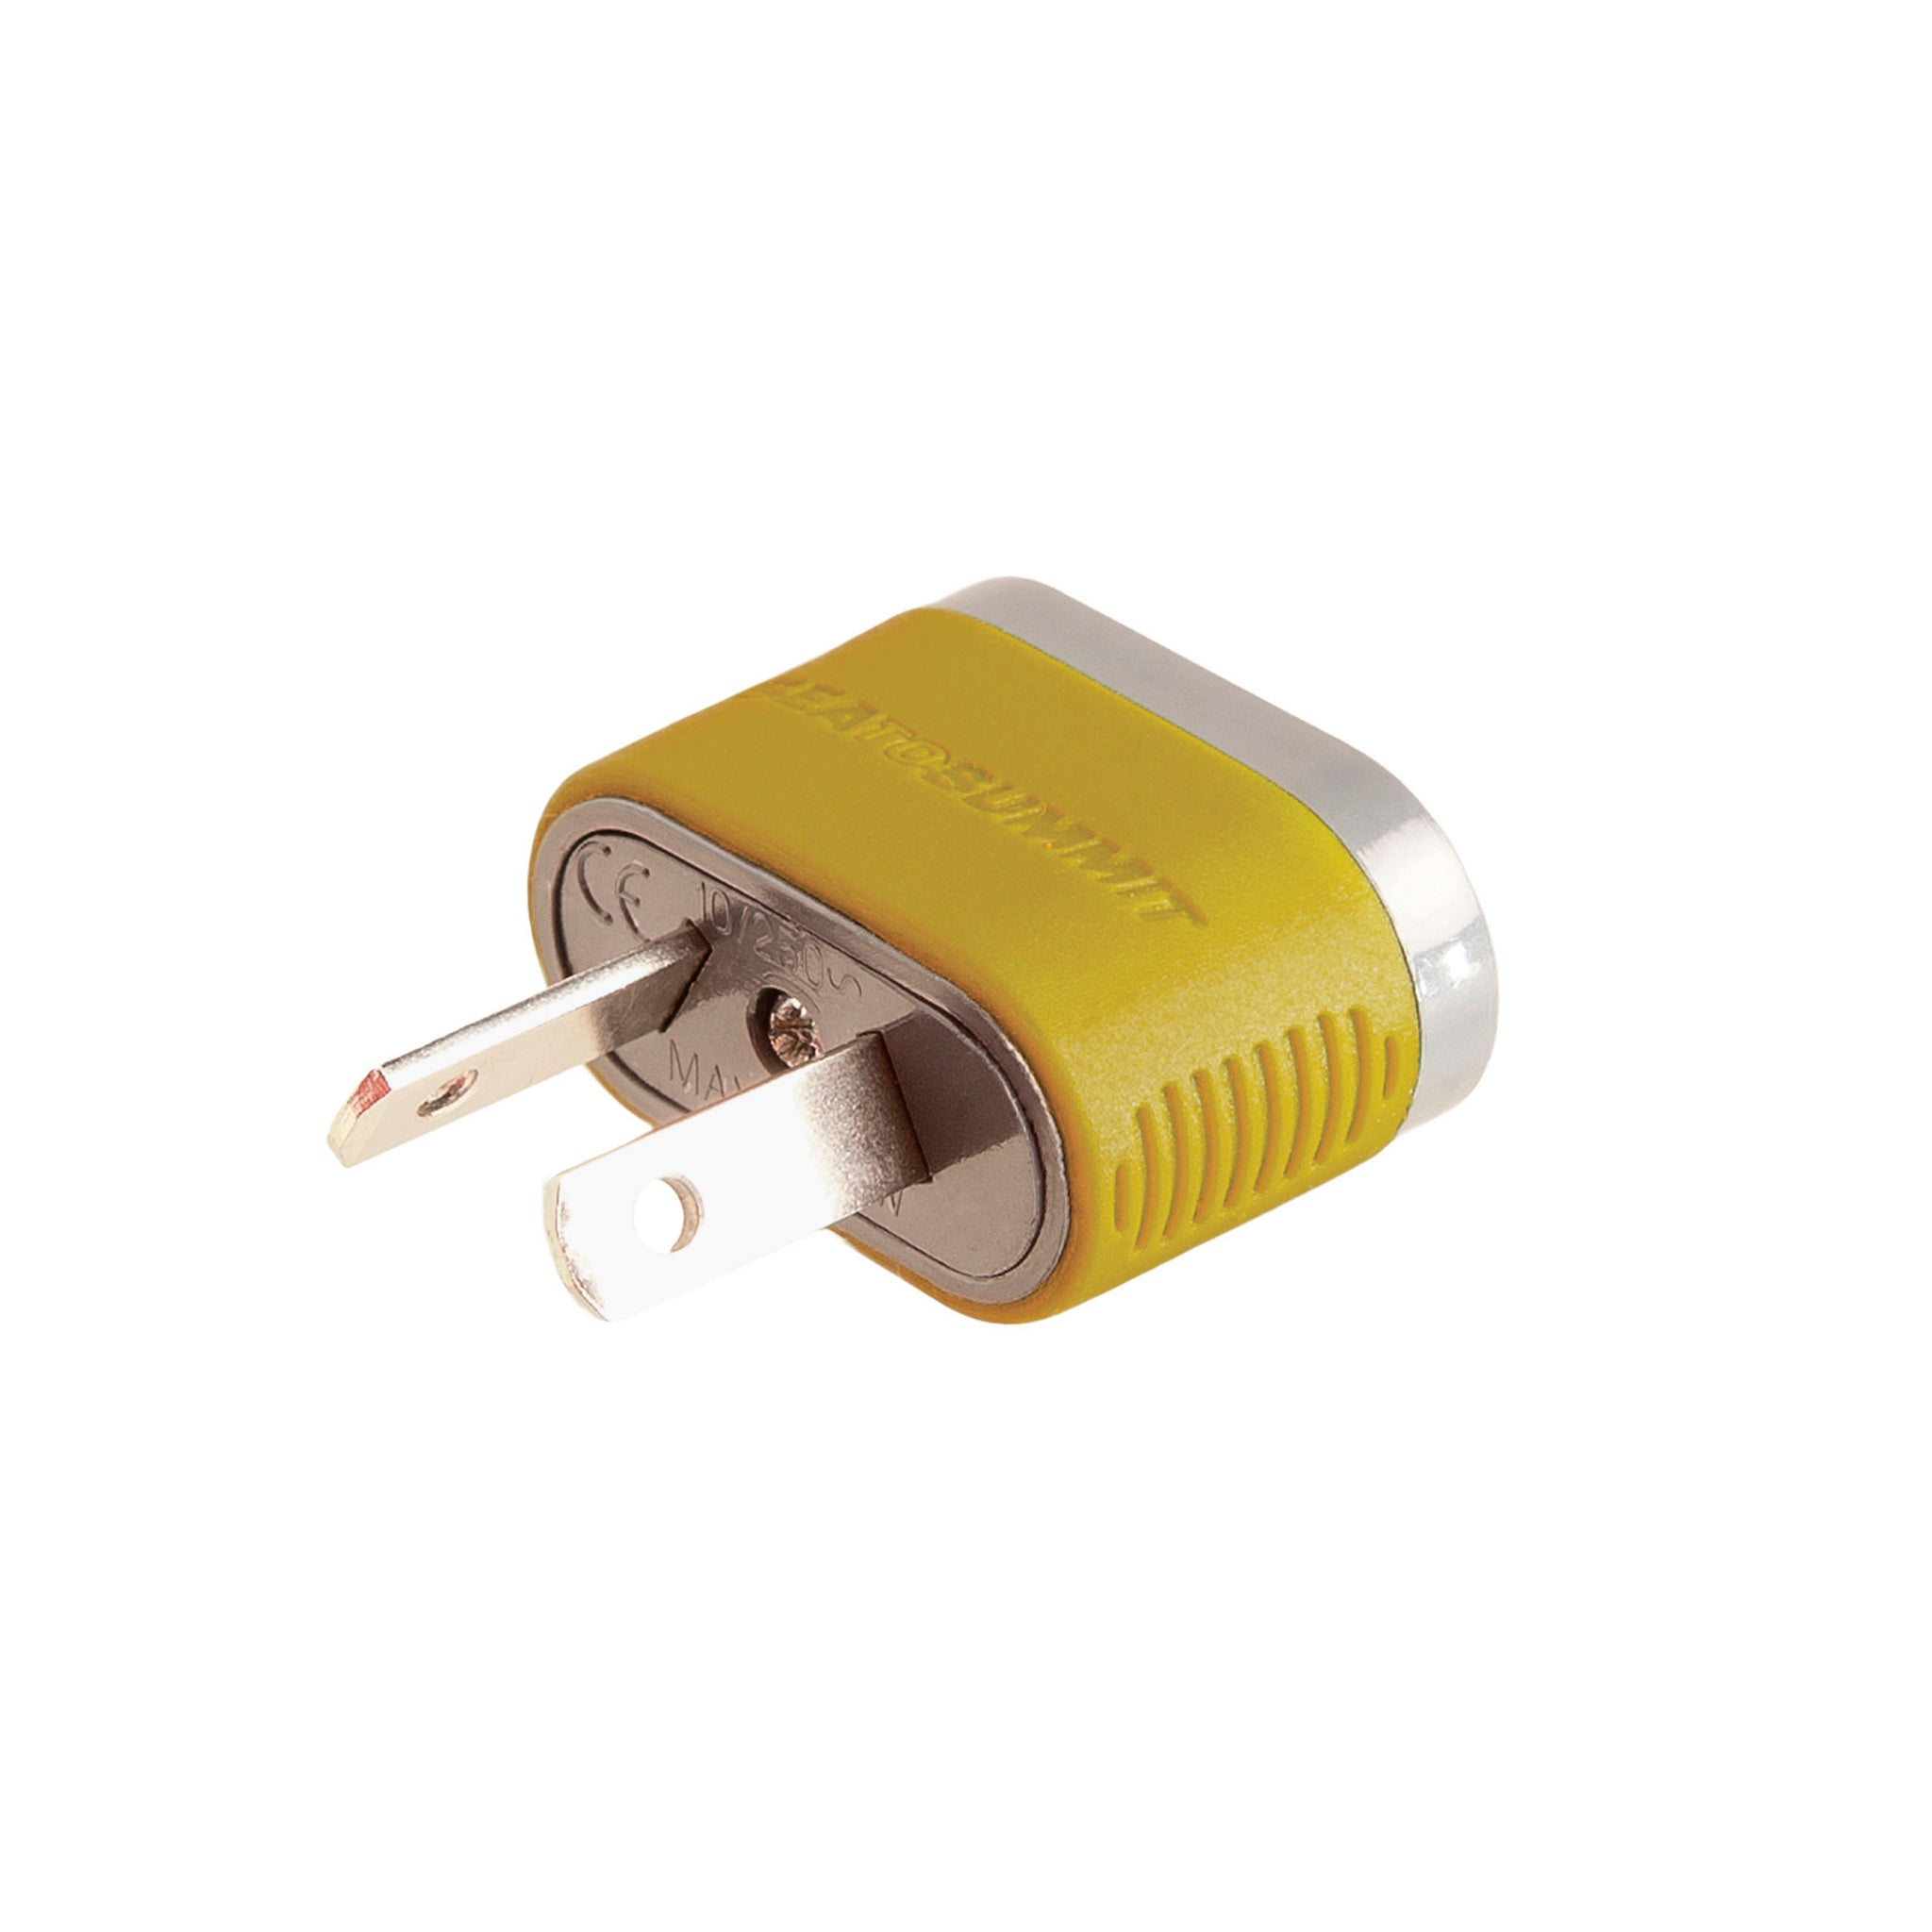 Travelling Light Travel Adapter _ plug converter _ Asia and Australia